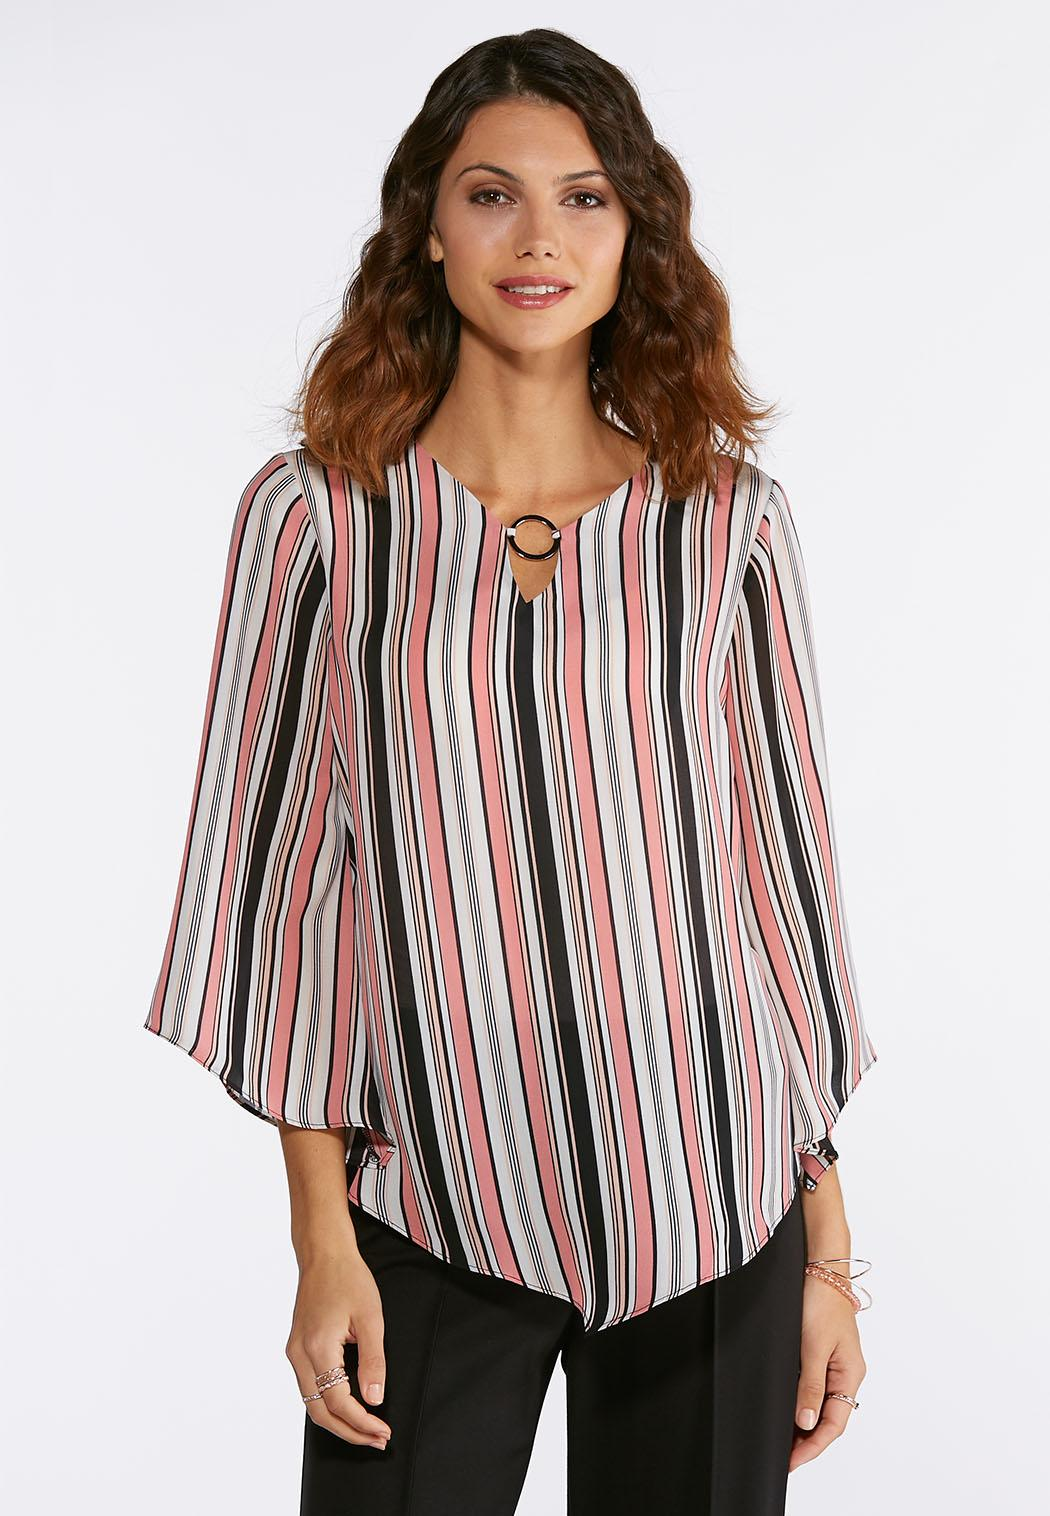 Plus Size Embellished Stripe Top Shirts Blouses Cato Fashions